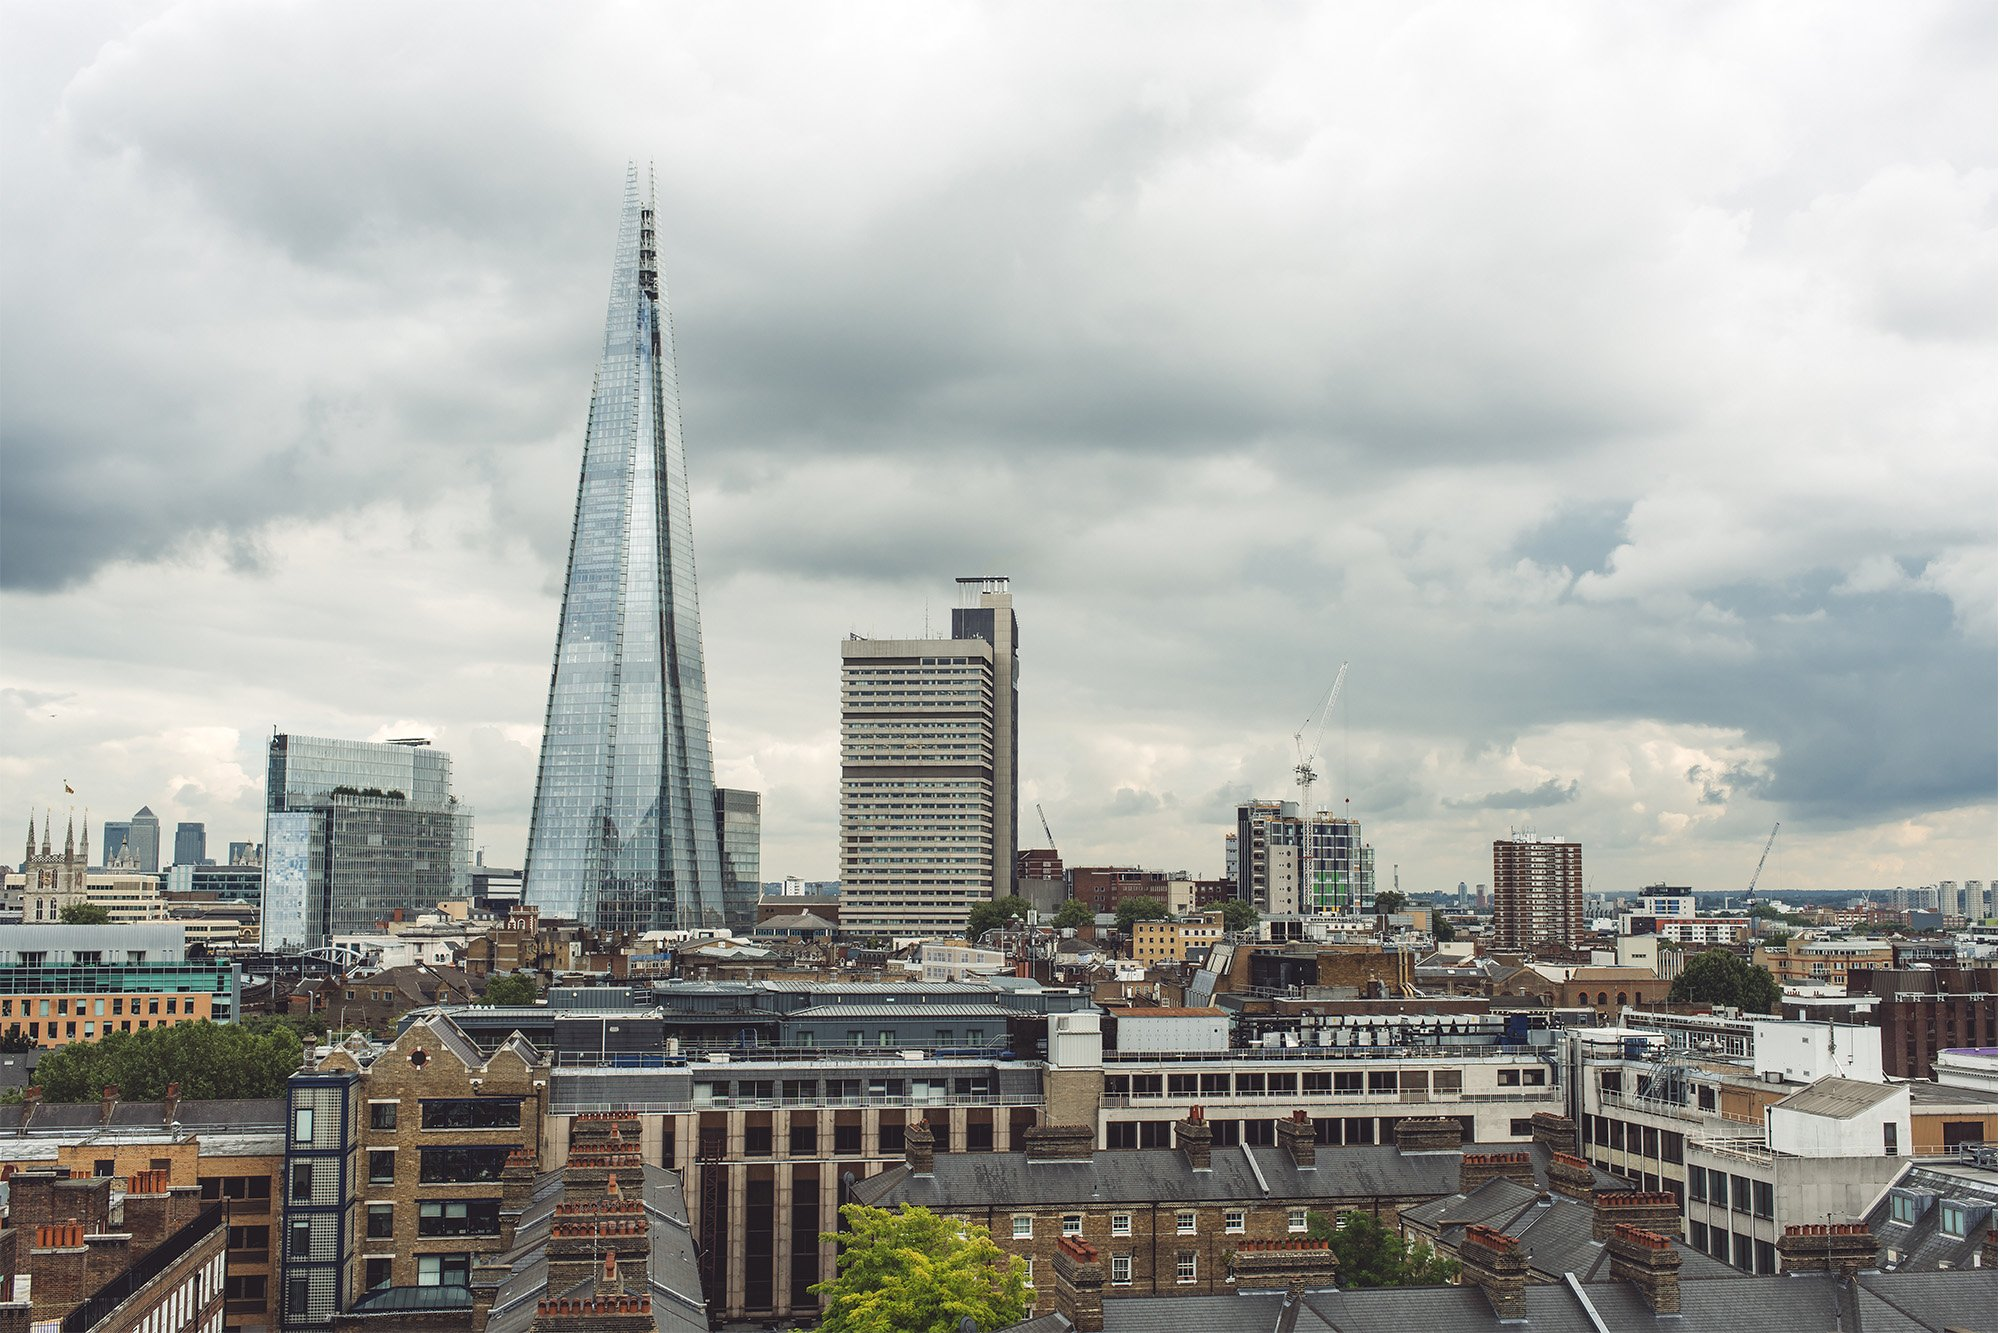 Testing the Sony A7R II – Daytime view of The Shard in London